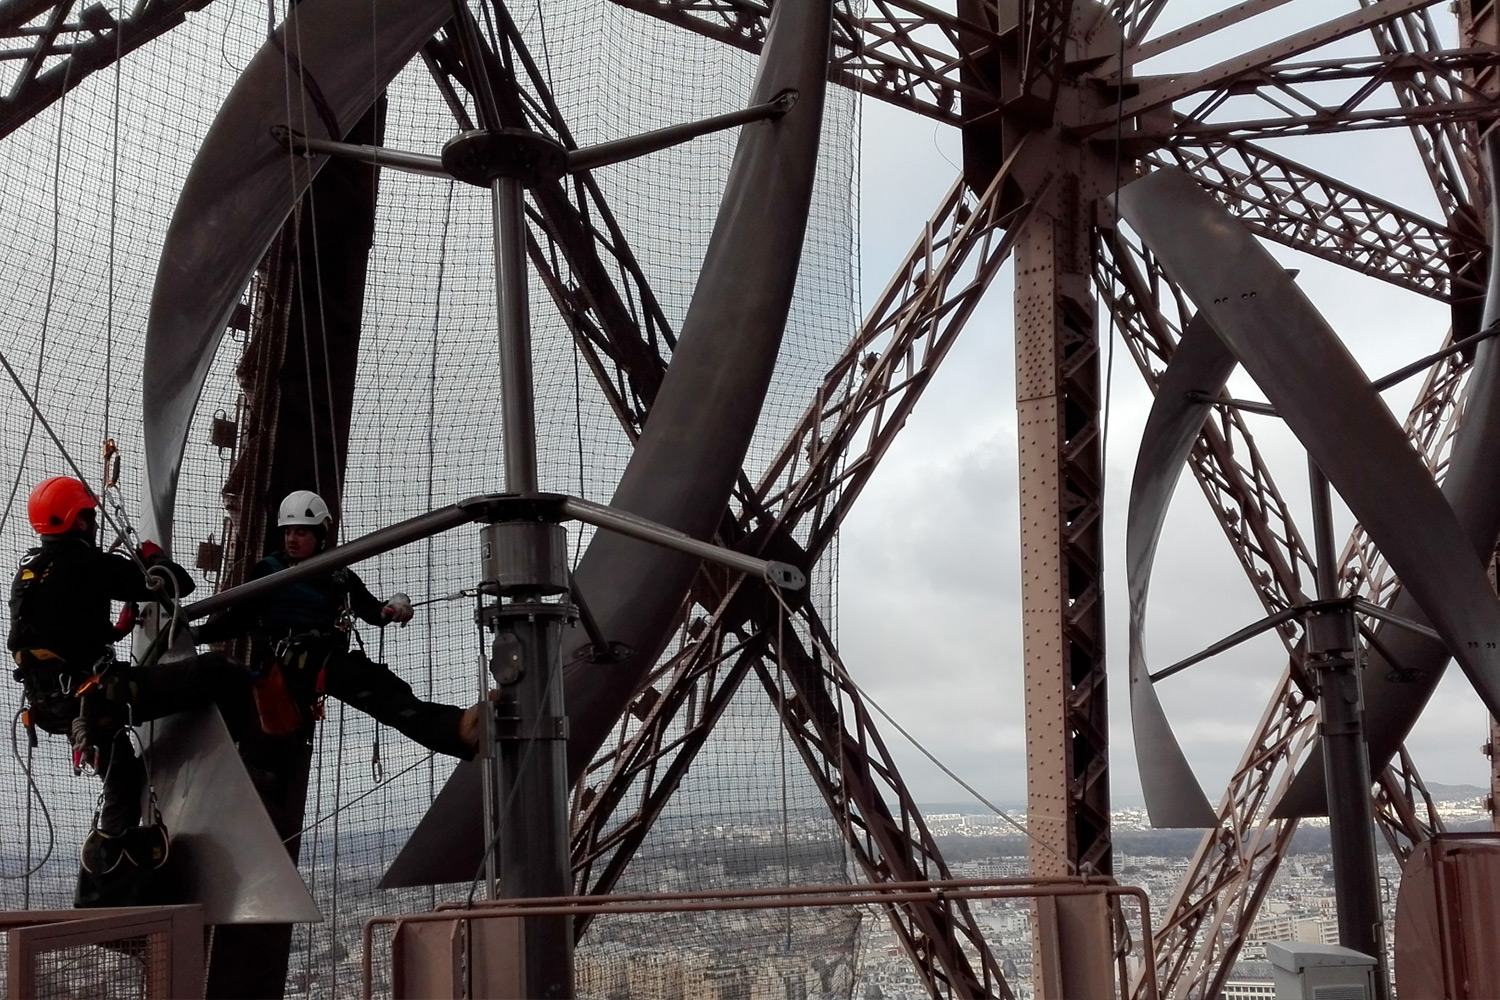 intervention-maintenance-eoliennes-tour-eiffel